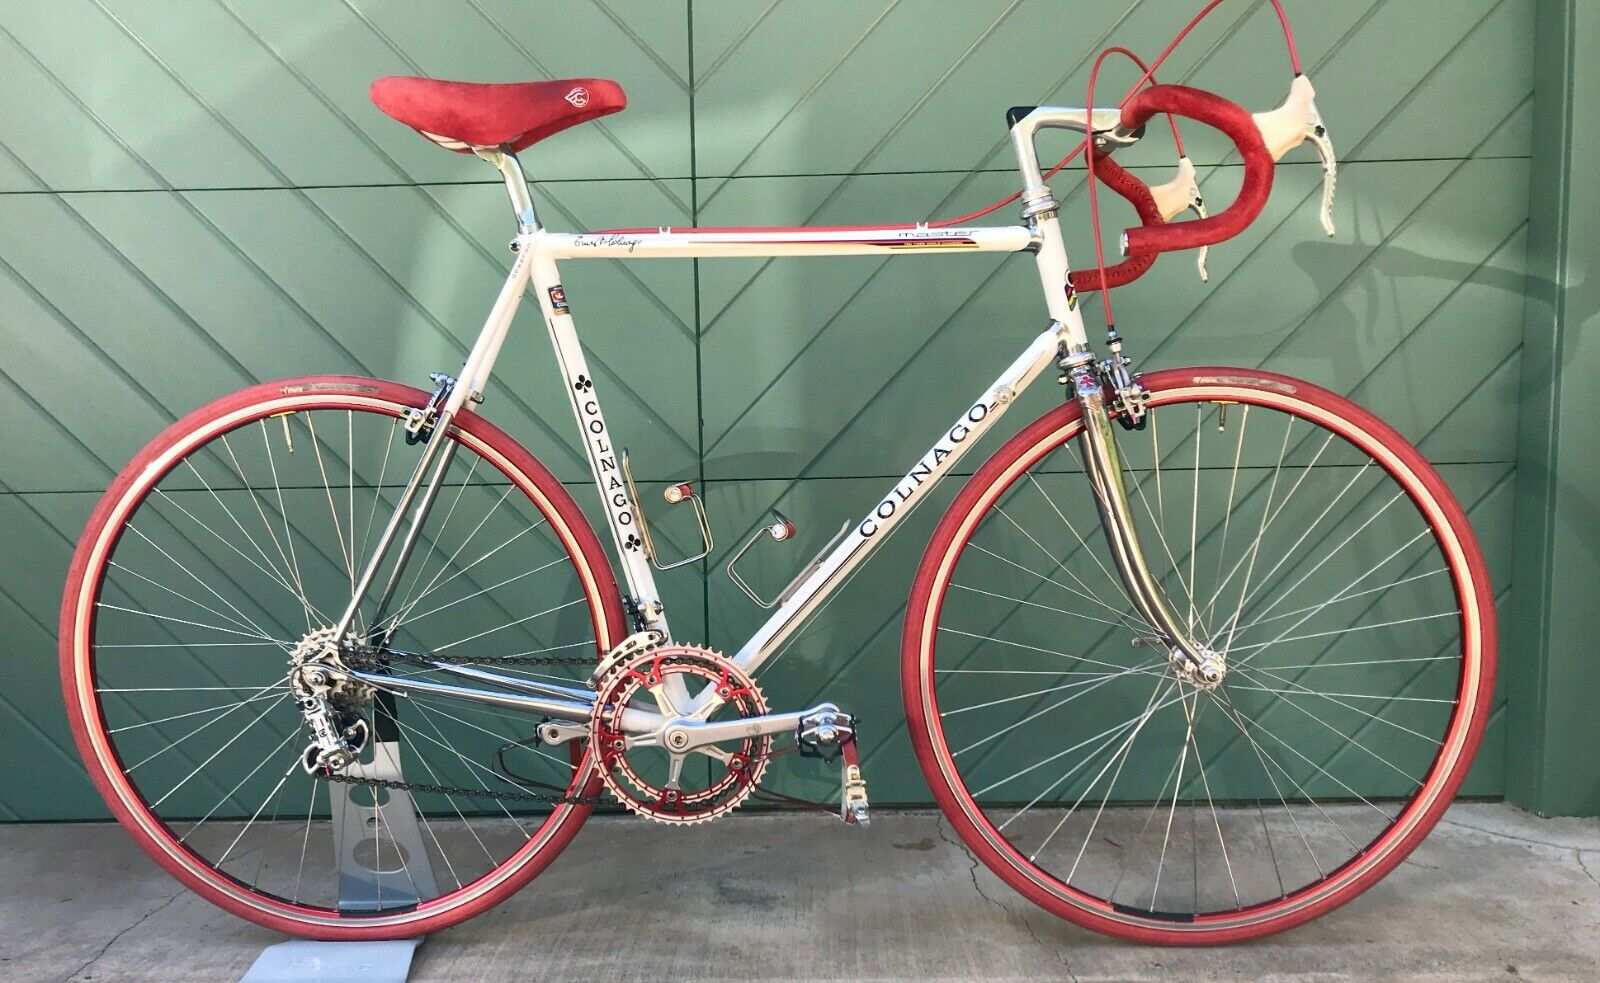 COLNAGO MASTER Vintage Bicycle 58cm 1st Gen Gilco S4-Campagnolo-Pantographed (Used - 7495 USD)